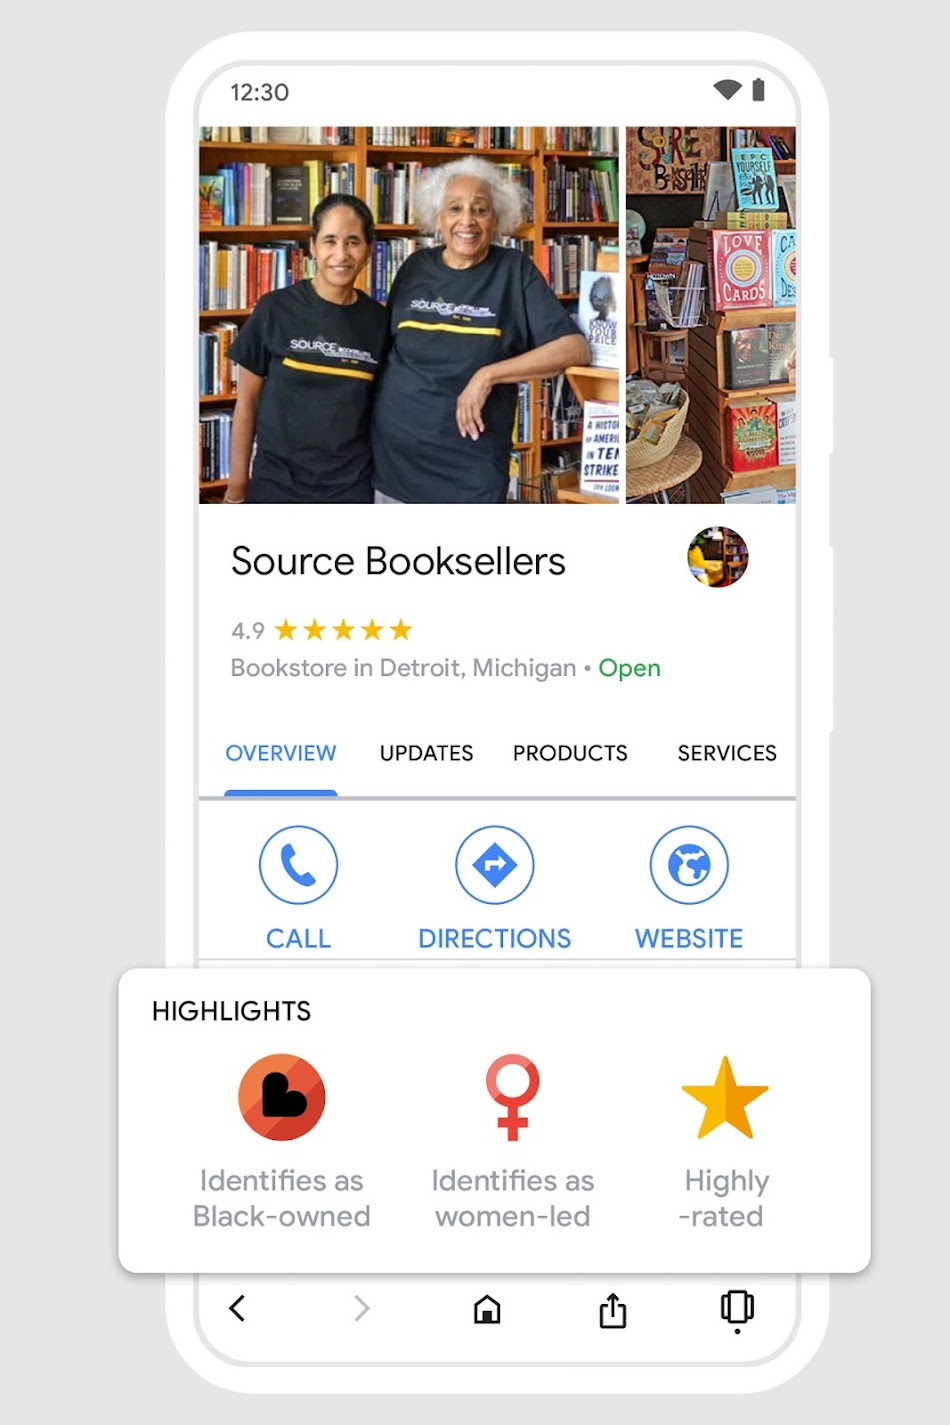 Phone screen showing black-owned business attribute on Google Maps, featuring photo of two people from Source Booksellers.